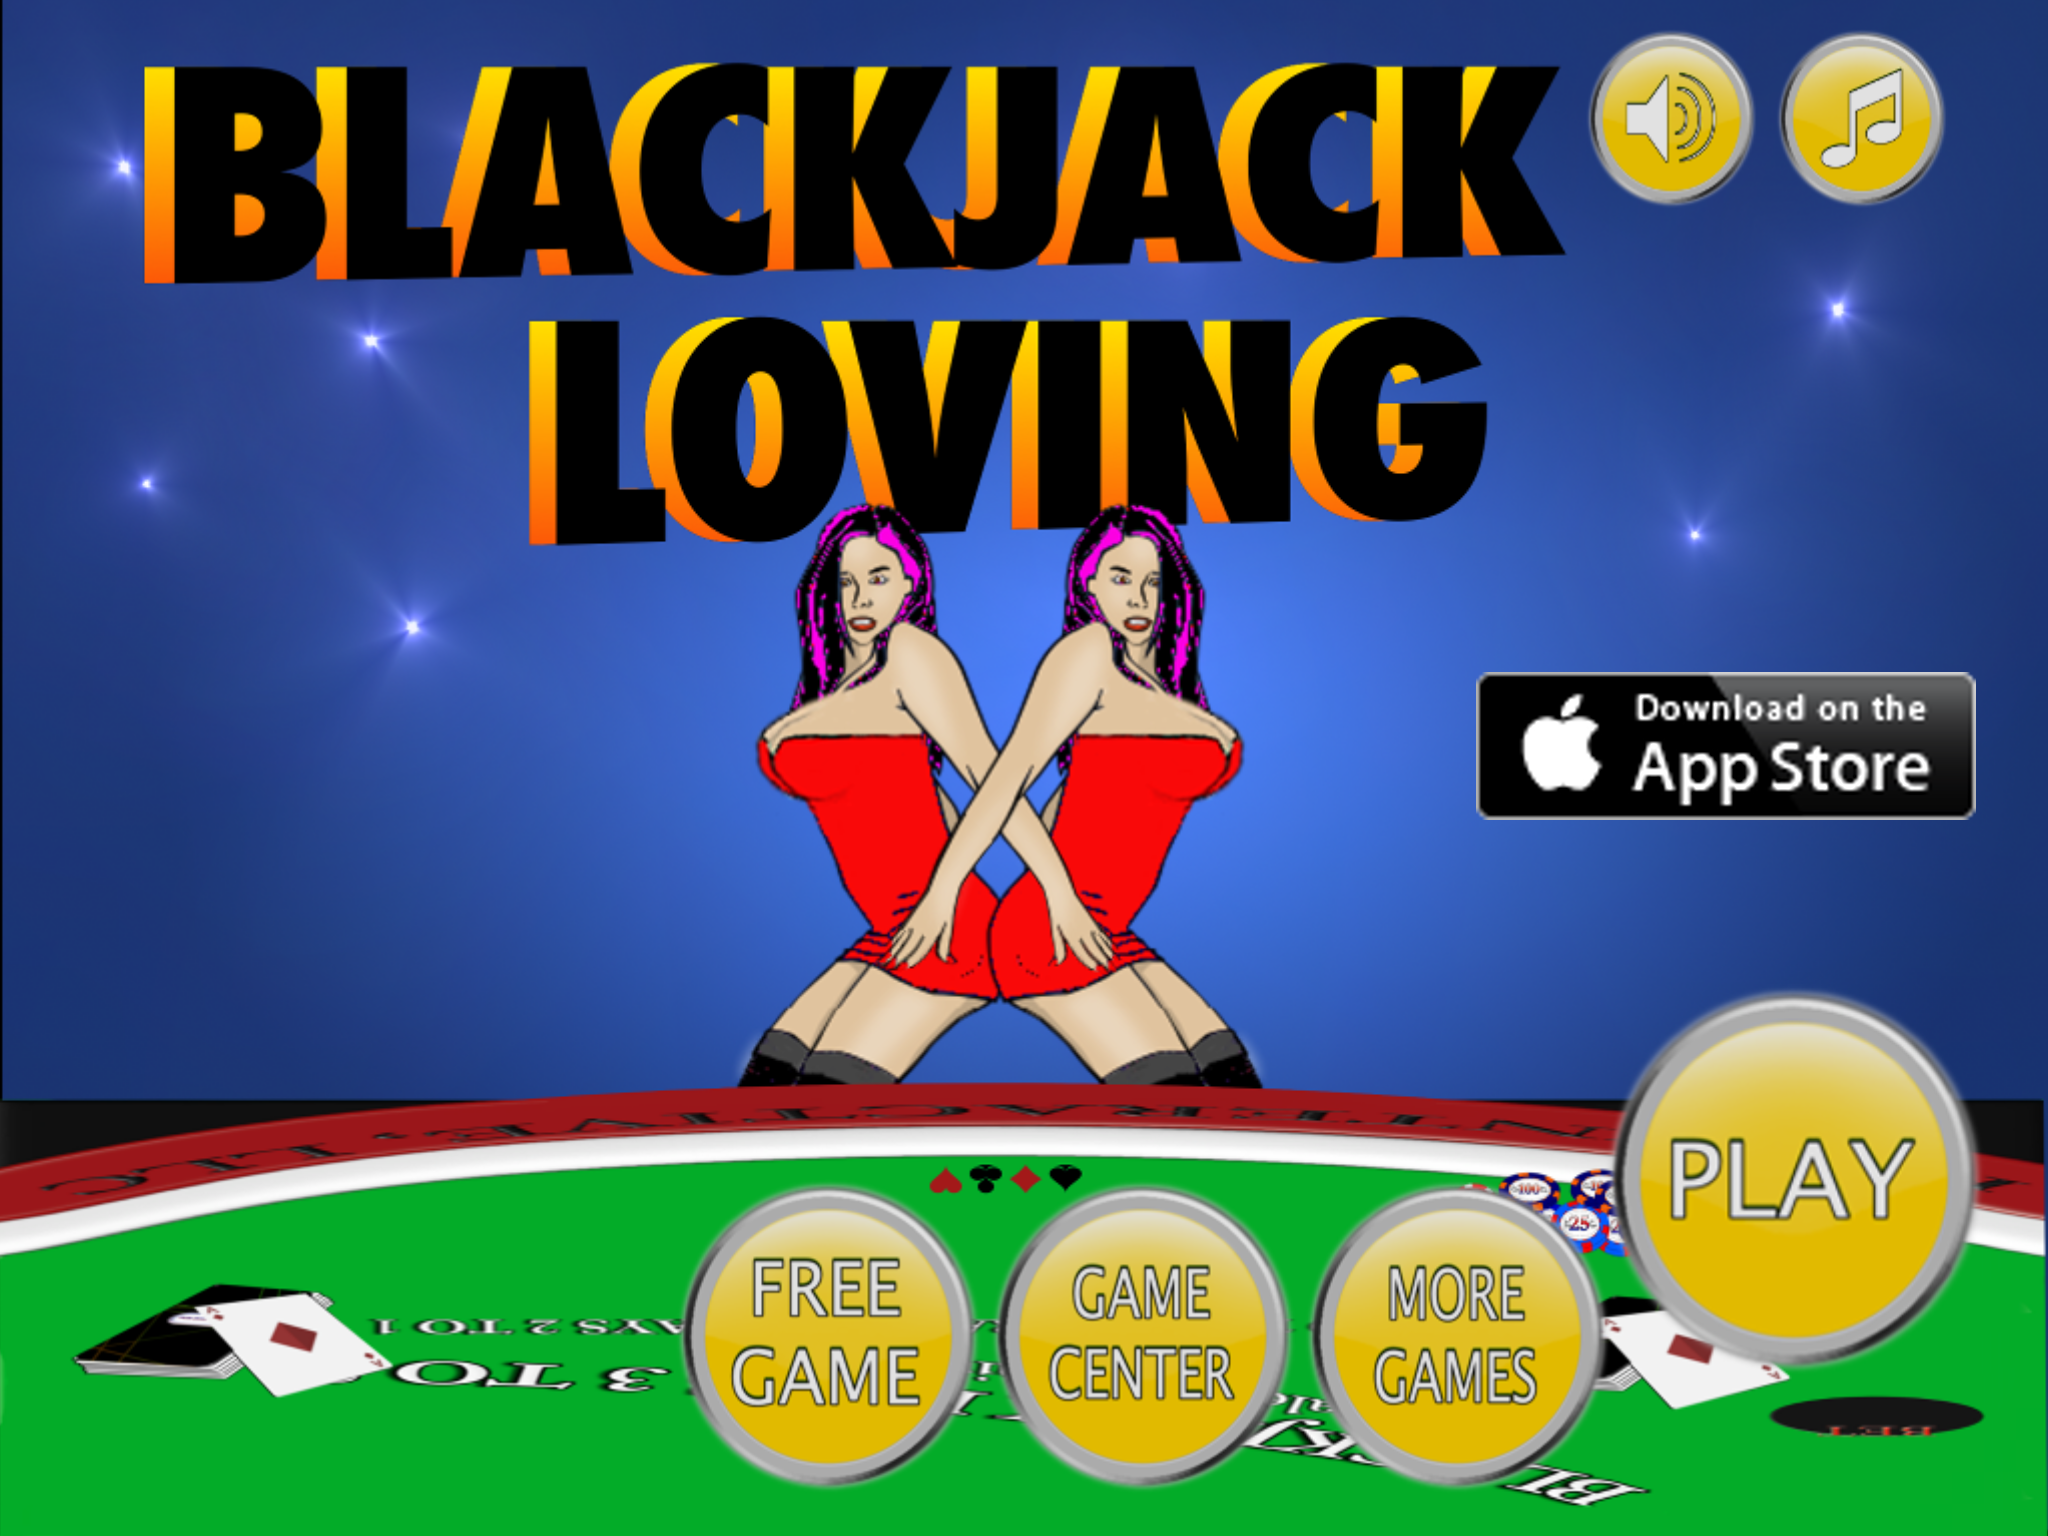 Blackjack Loving Free